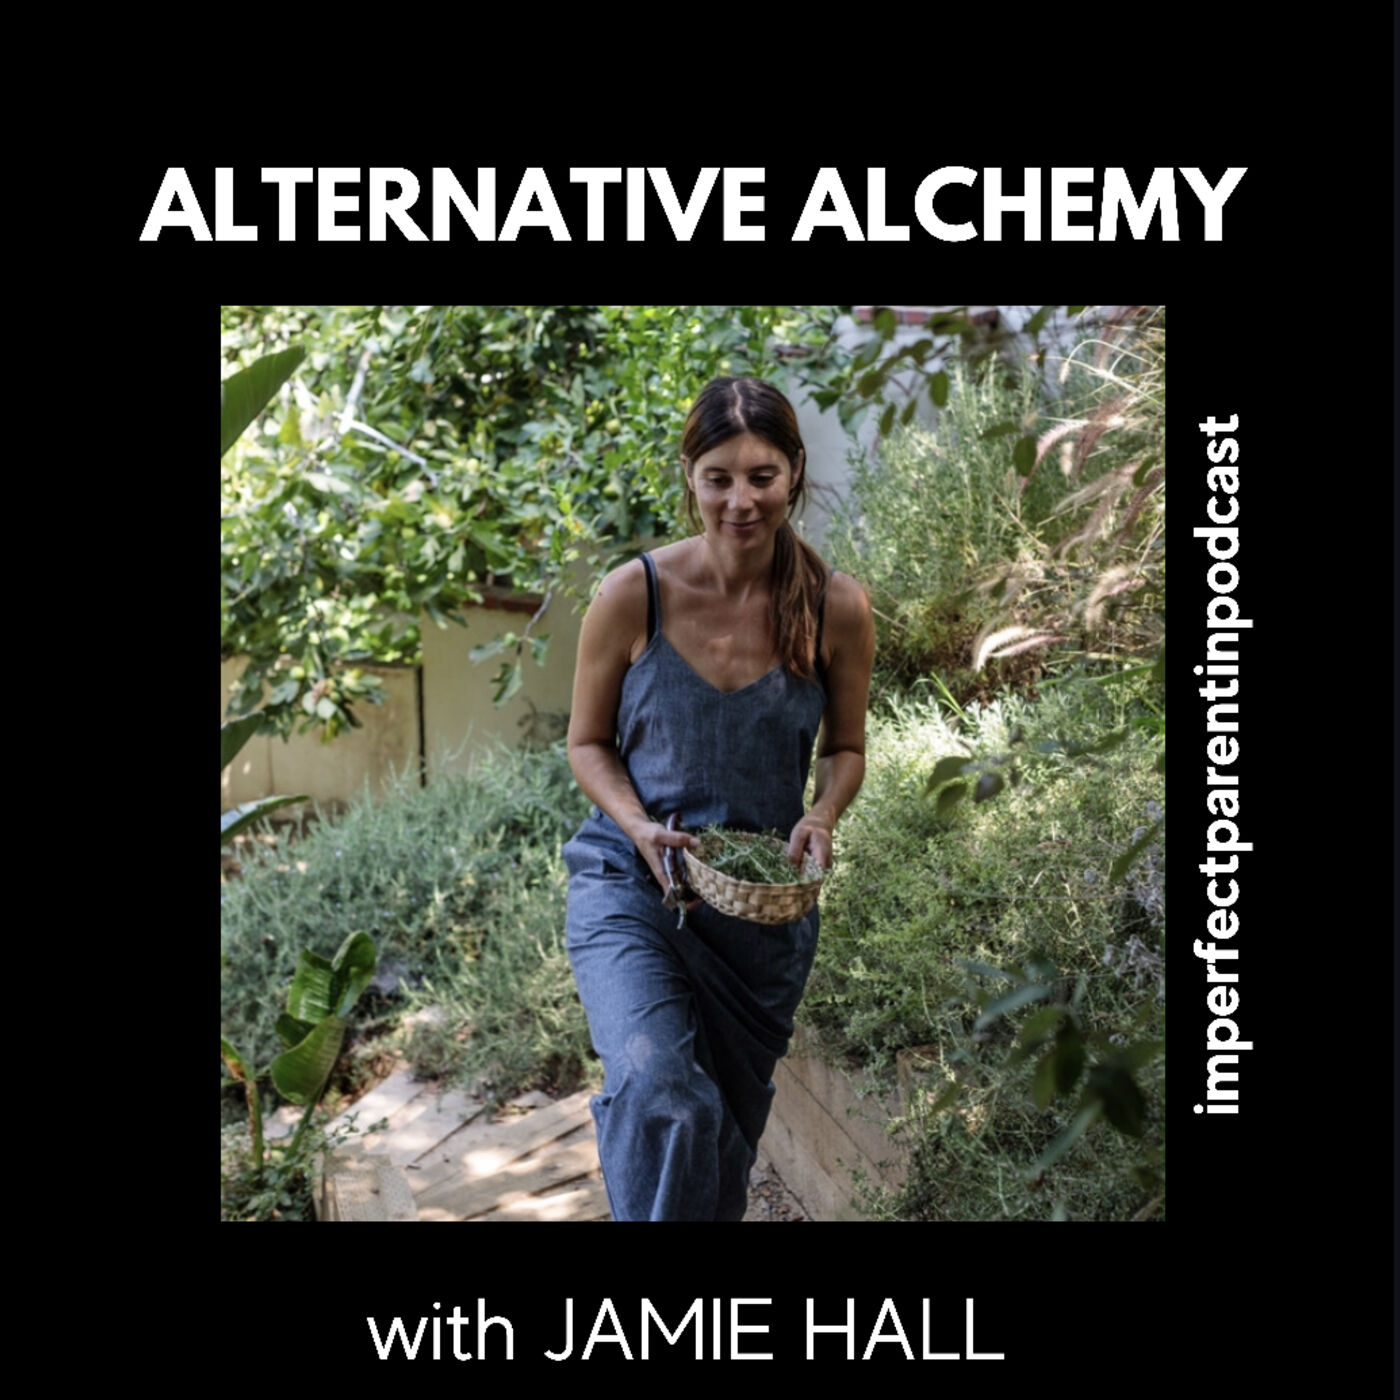 Alternative Alchemy: Recipes and Mindful Baking with CBD, Herbs, and Adaptogens with author Jamie Hall